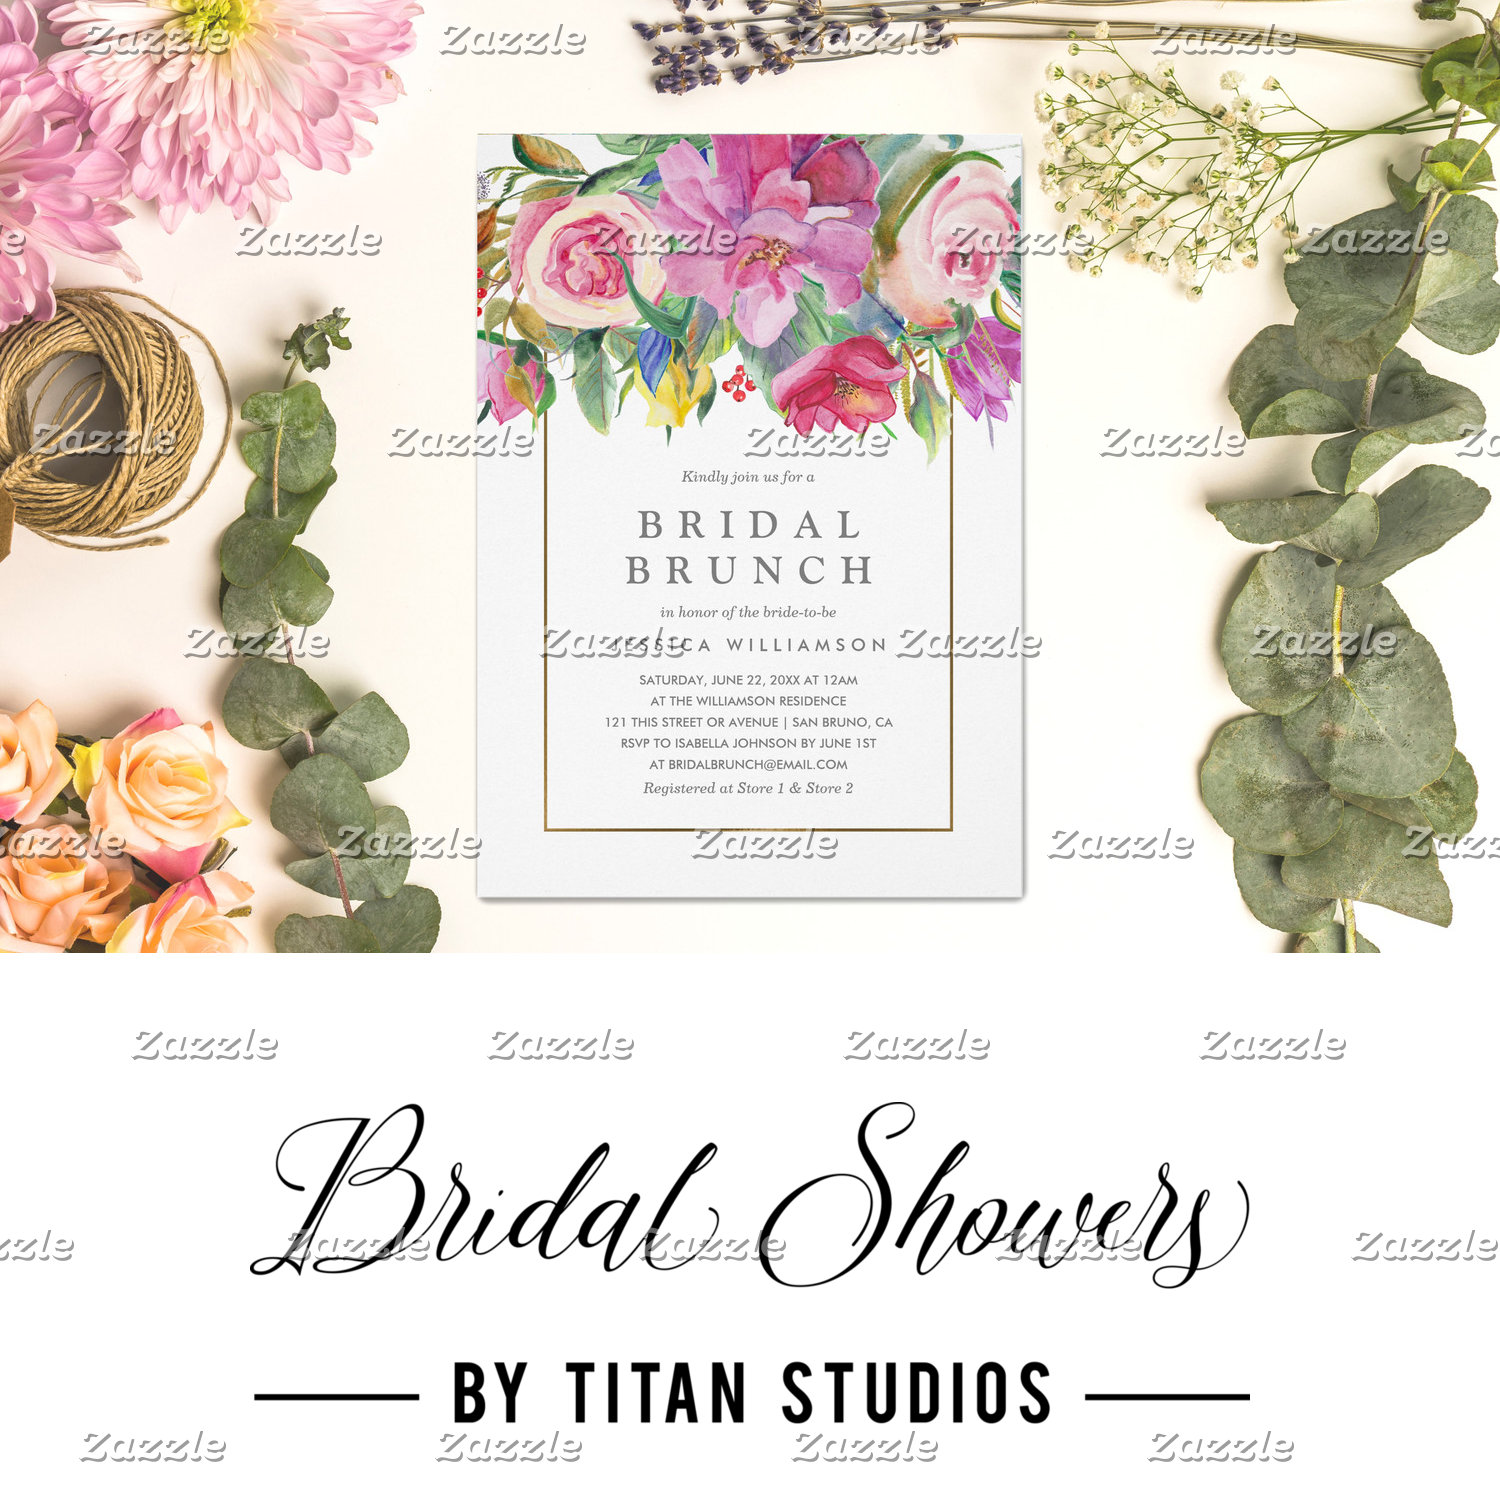 Bridal Showers by Titan Studios